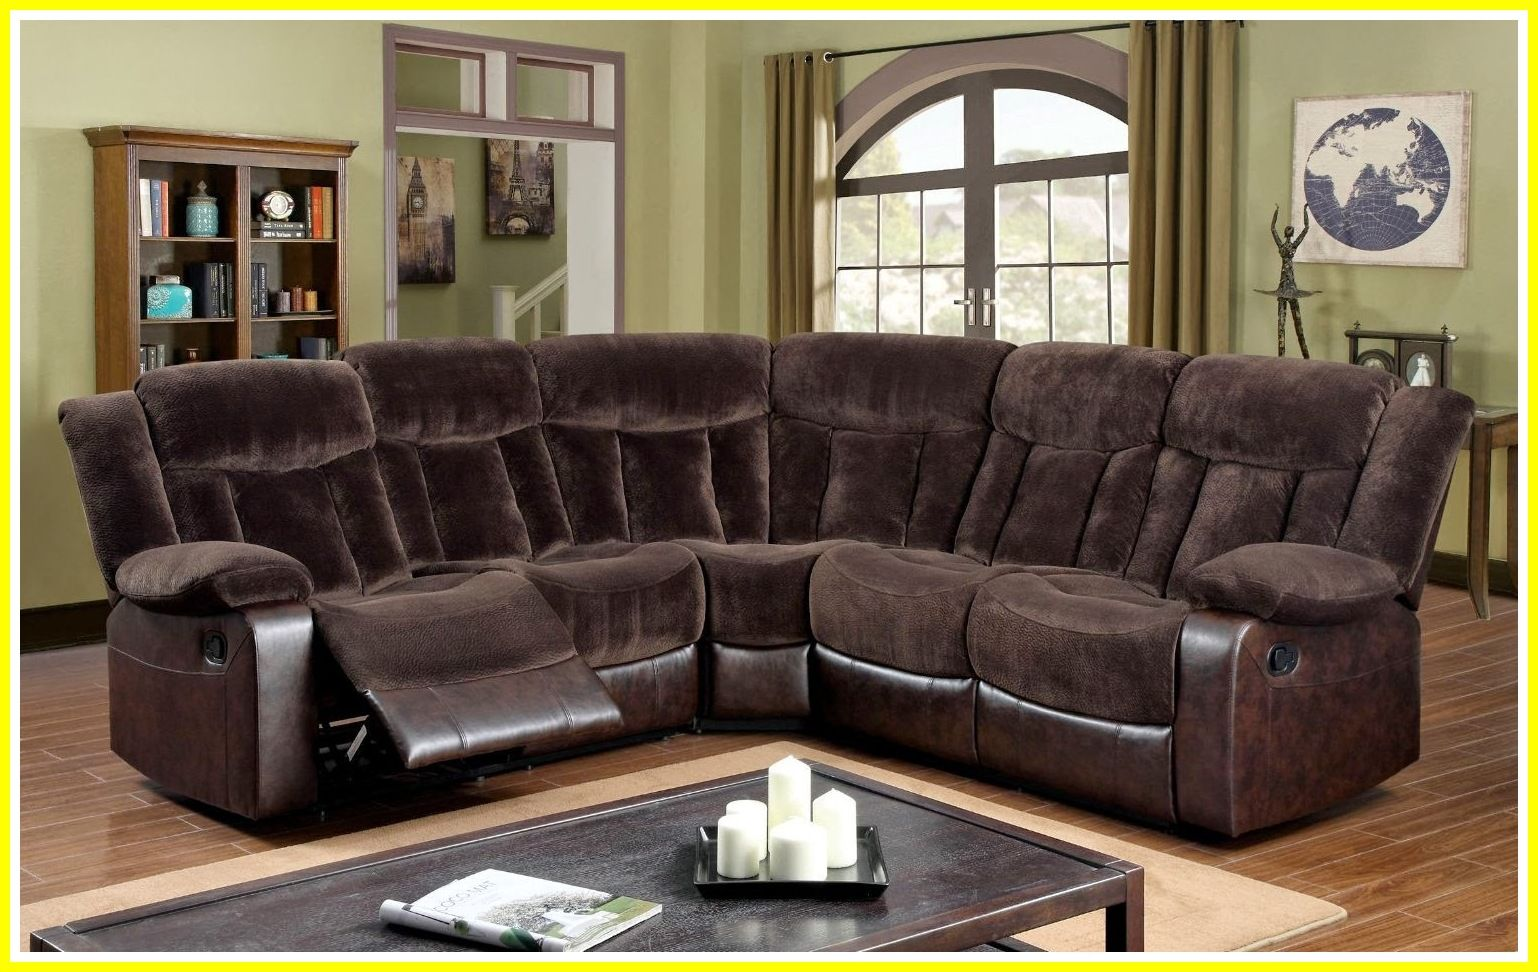 95 Reference Of Small Curved Sofa Uk In 2020 Sectional Sofa With Recliner Corner Sectional Sofa Sectional Sofa Couch